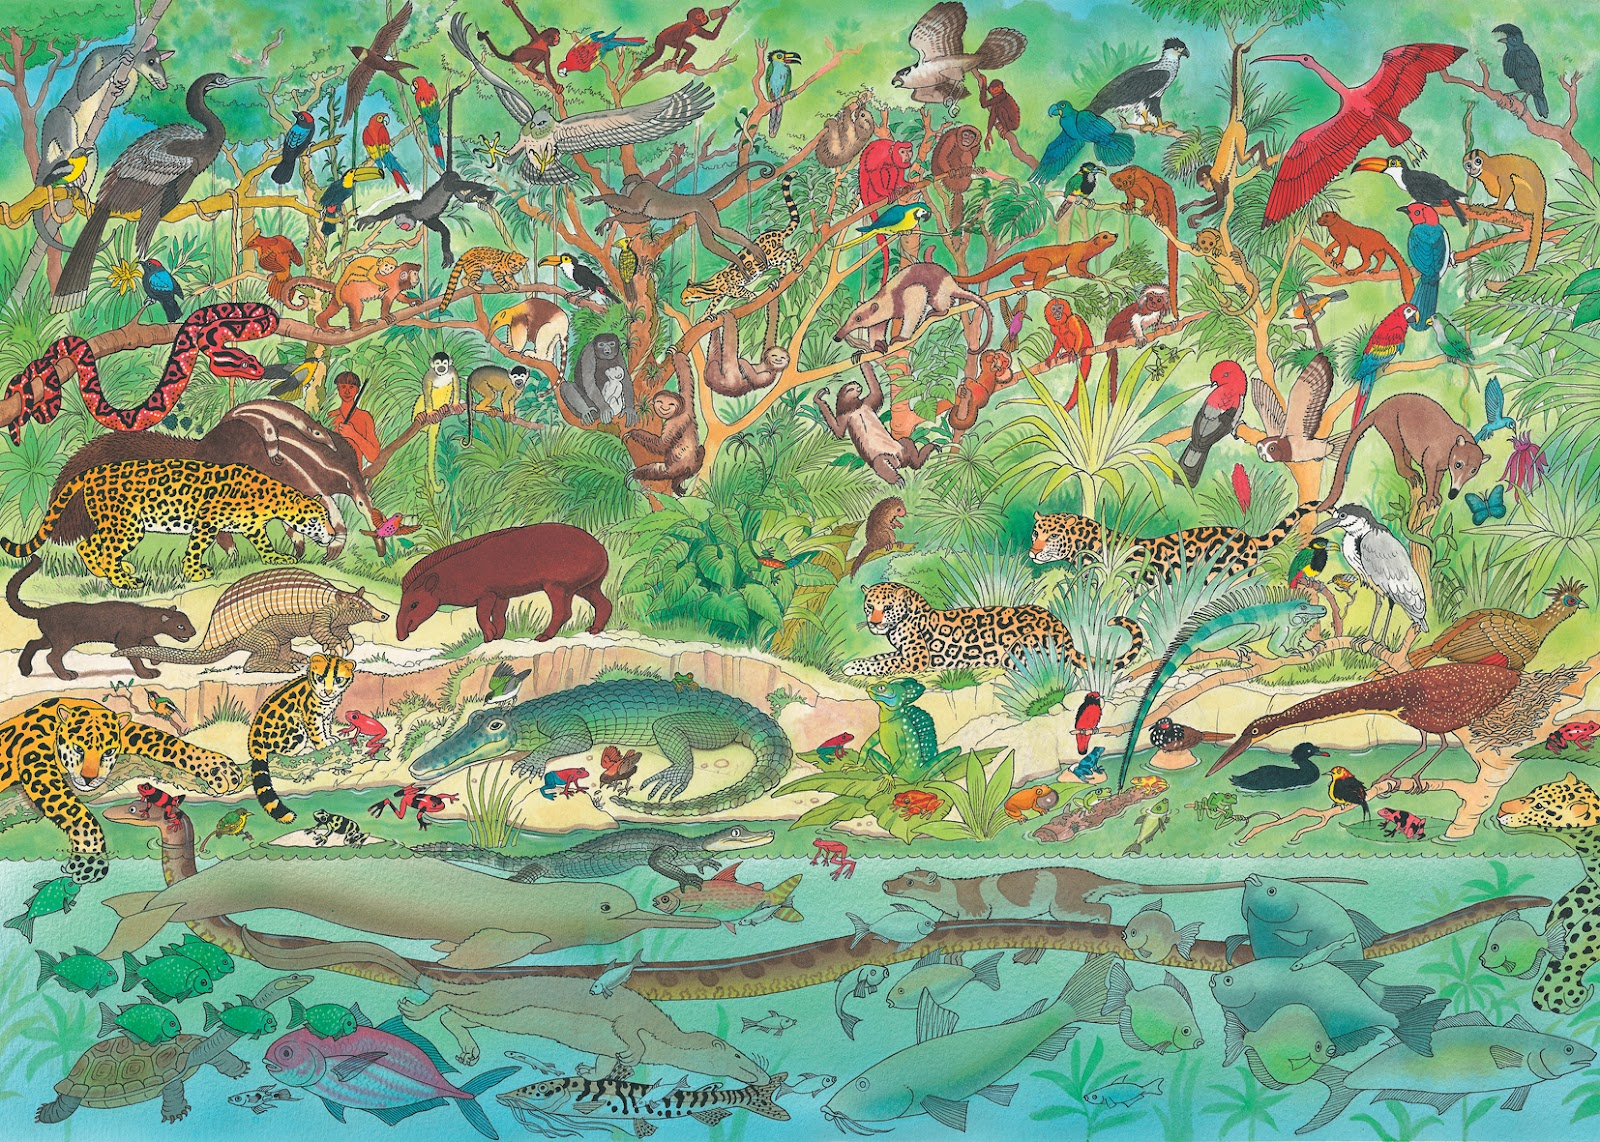 Rainforest one of a series of 6 watercolour illustrations featuring